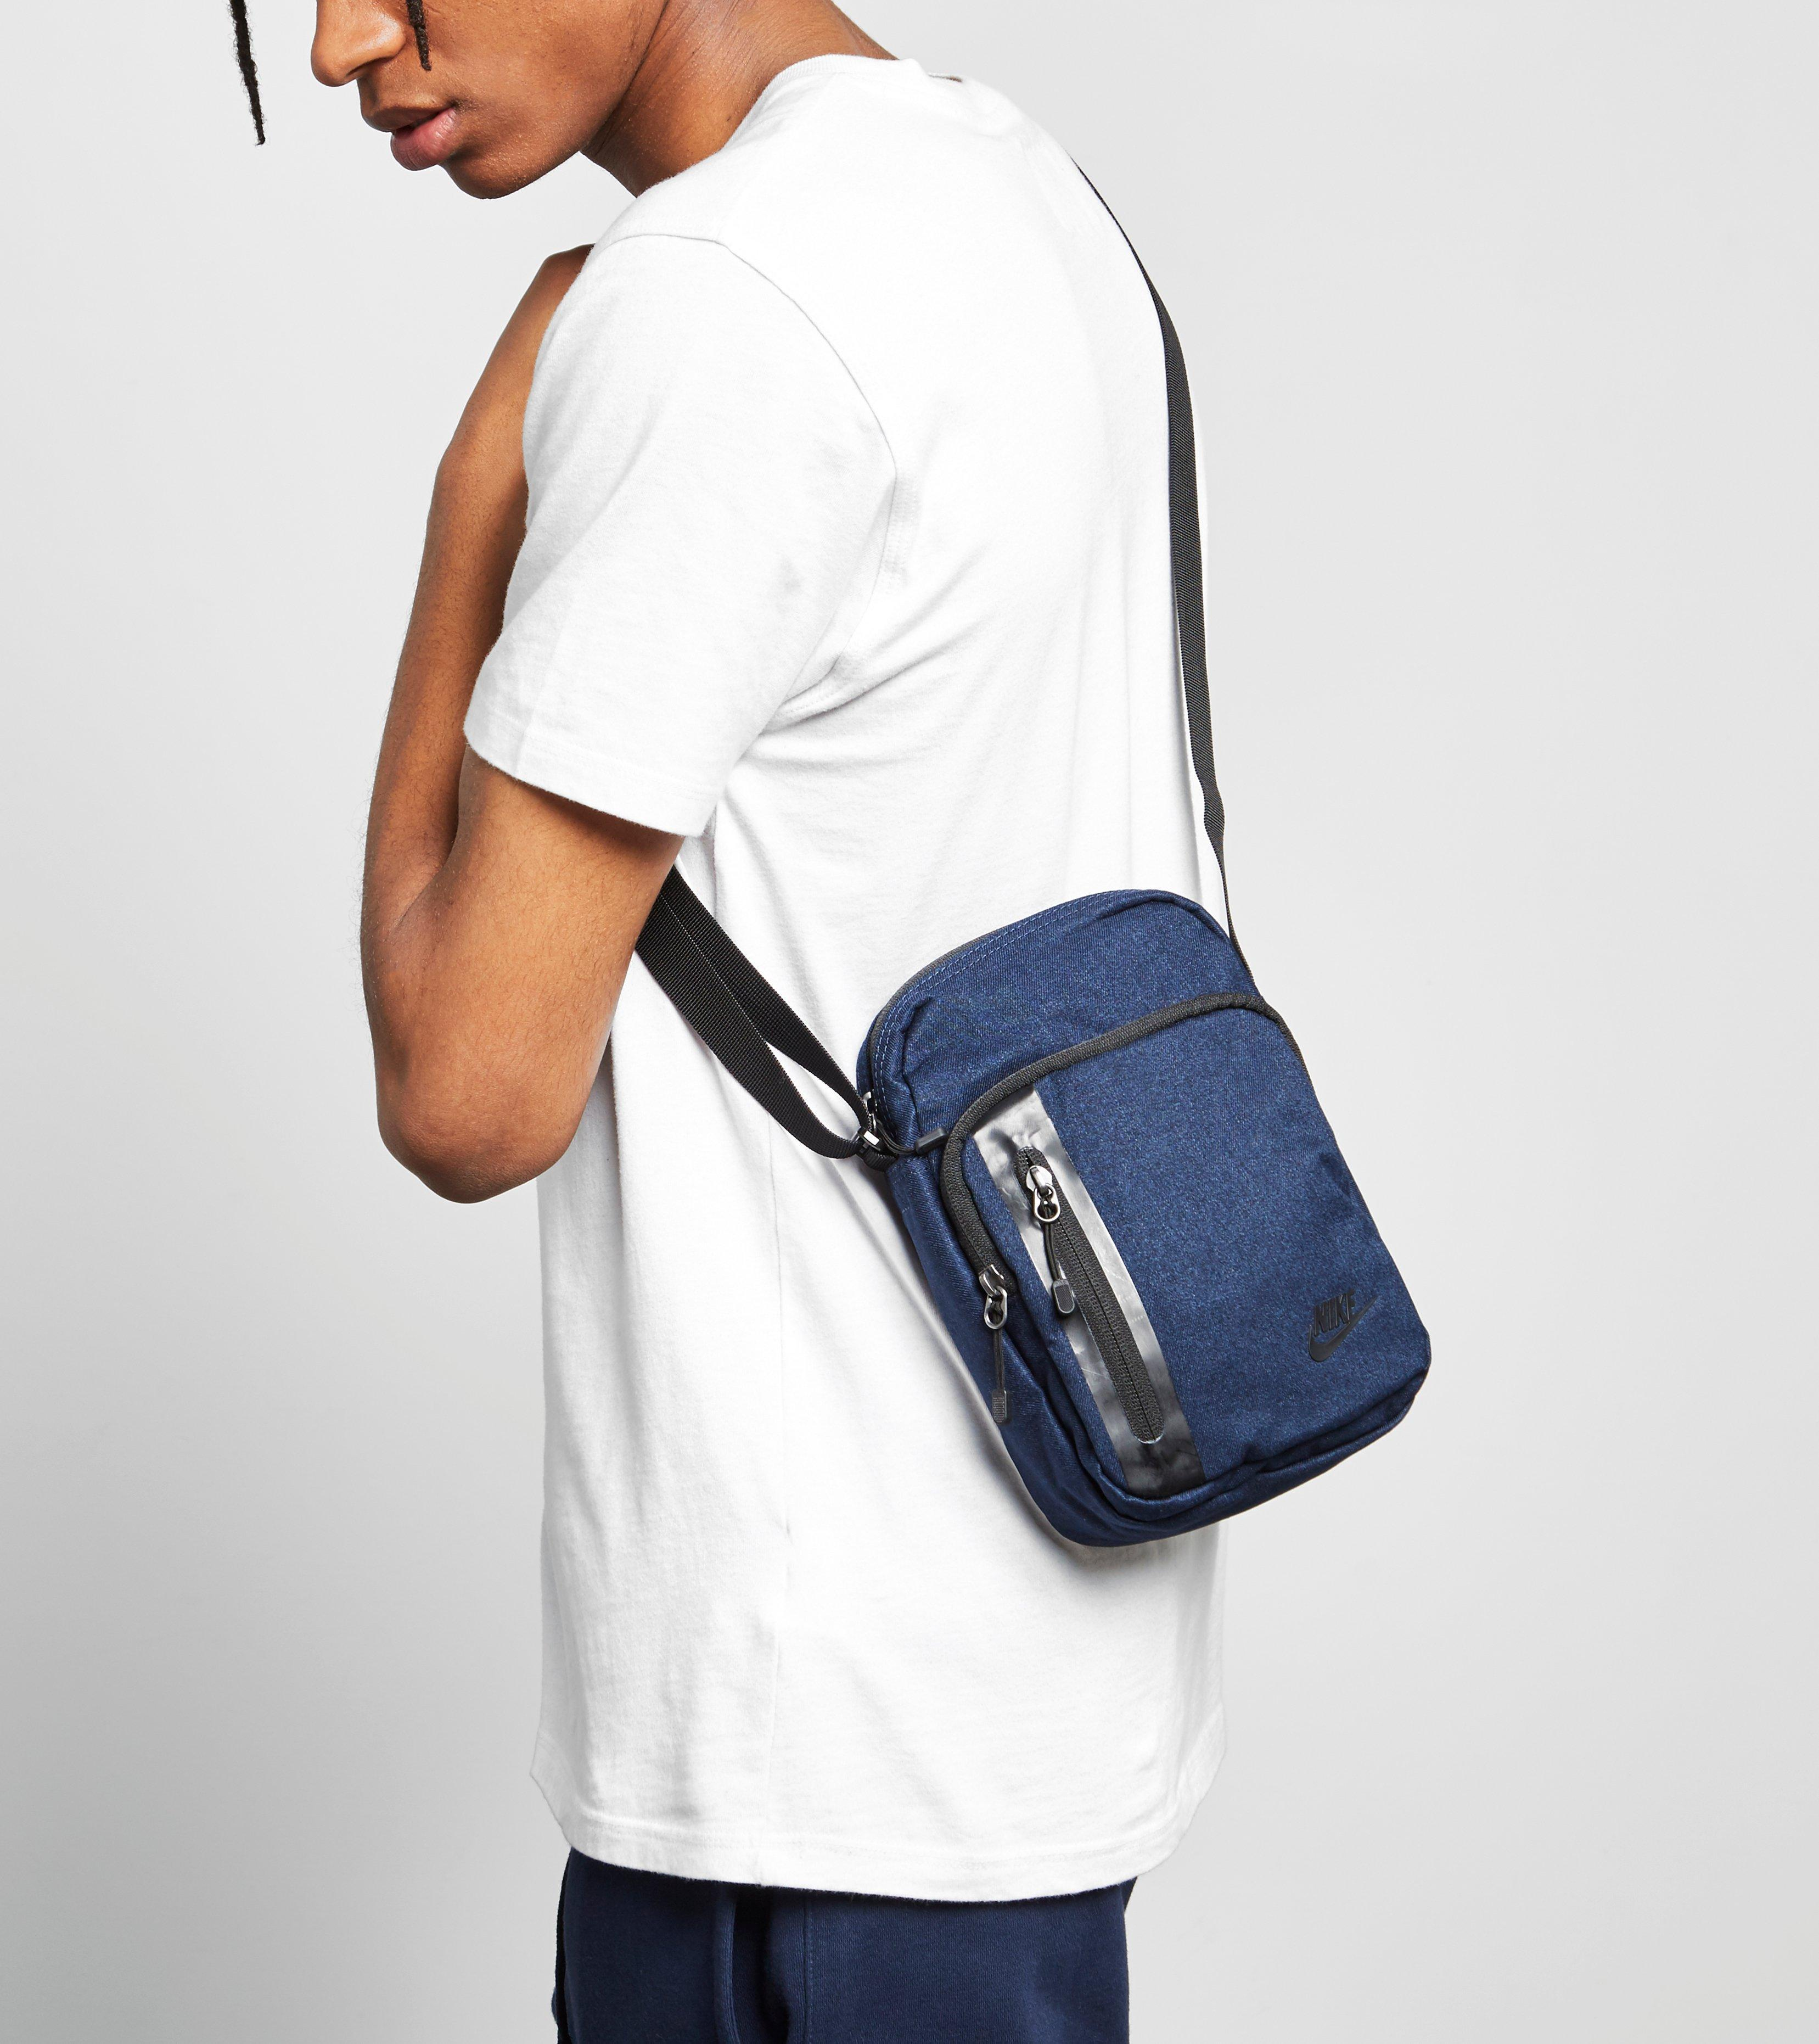 f2a4ad5187 Nike Core Small Items 3.0 Bag in Blue for Men - Lyst